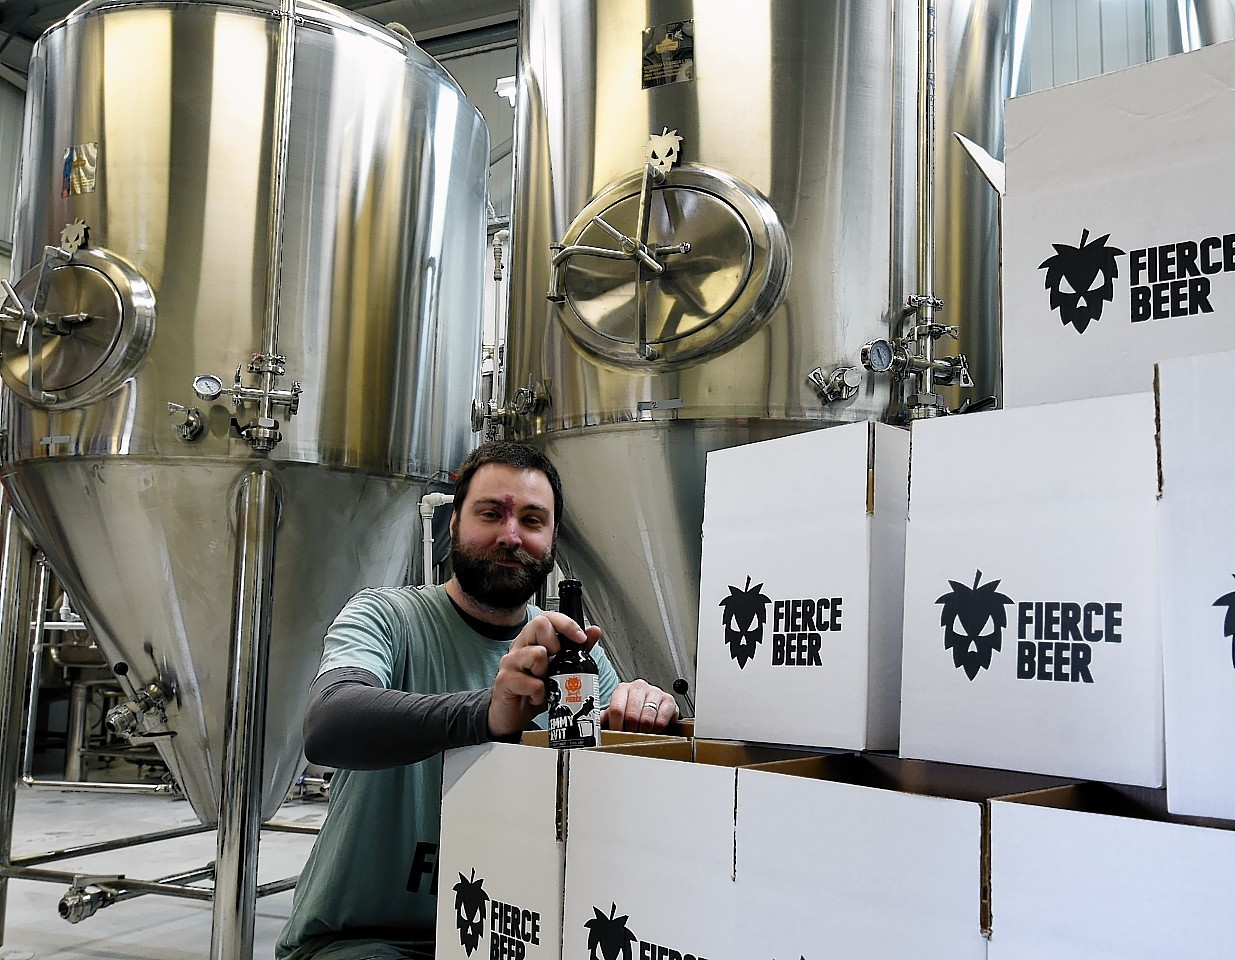 Dave McHardy who, along with Dave Grant, set up a new micro brewery in Aberdeen